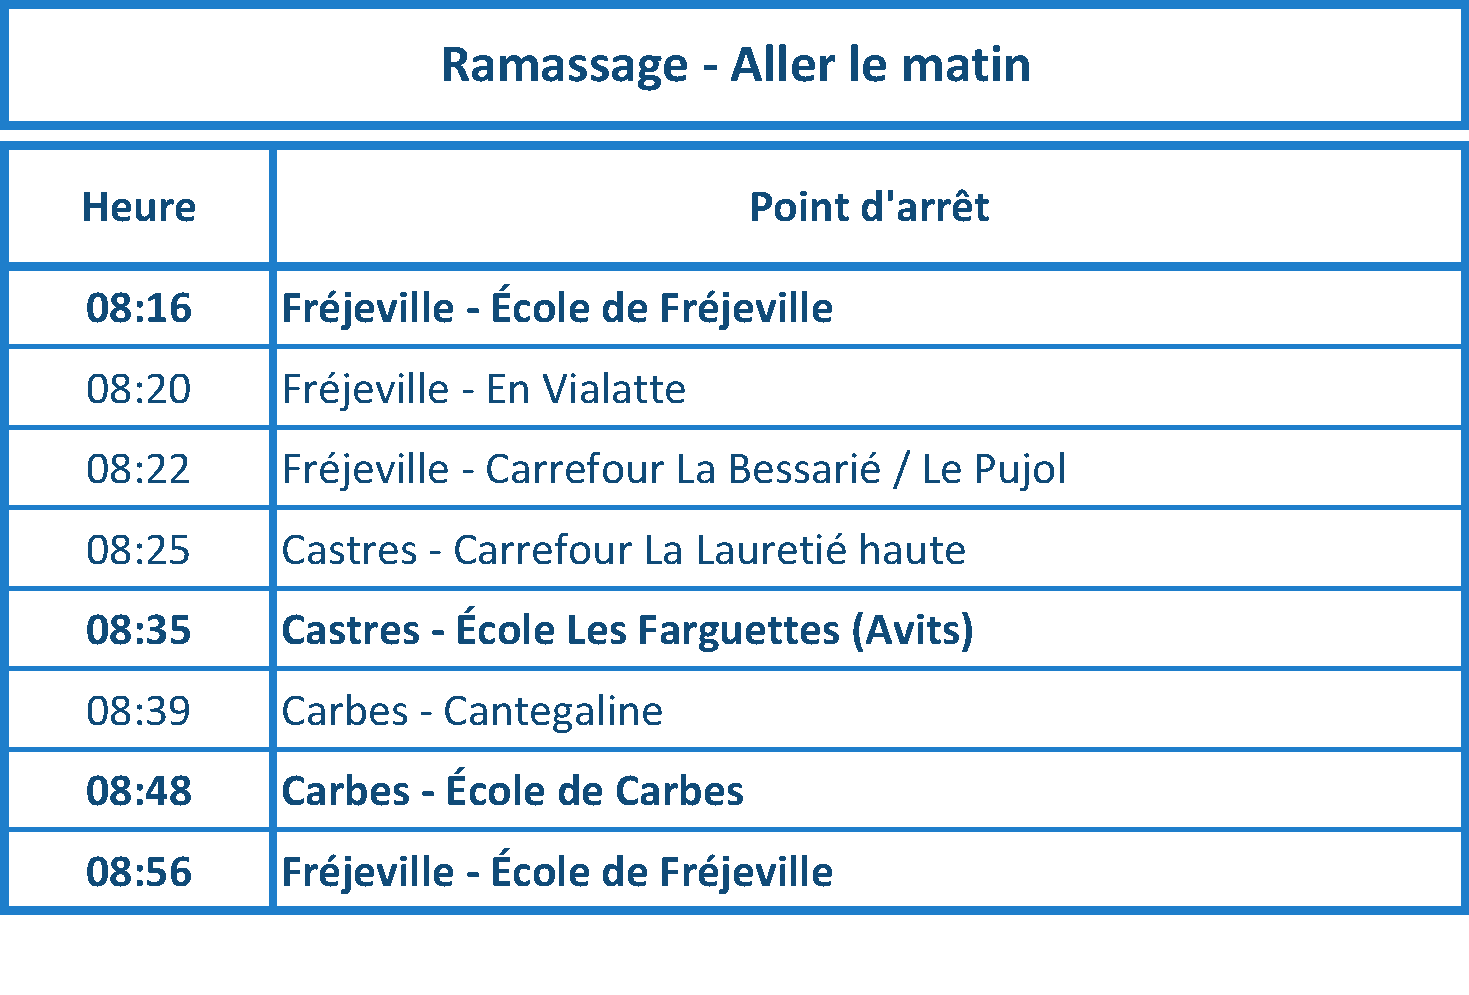 Ramassage scolaire - Aller le matin - 2020.png